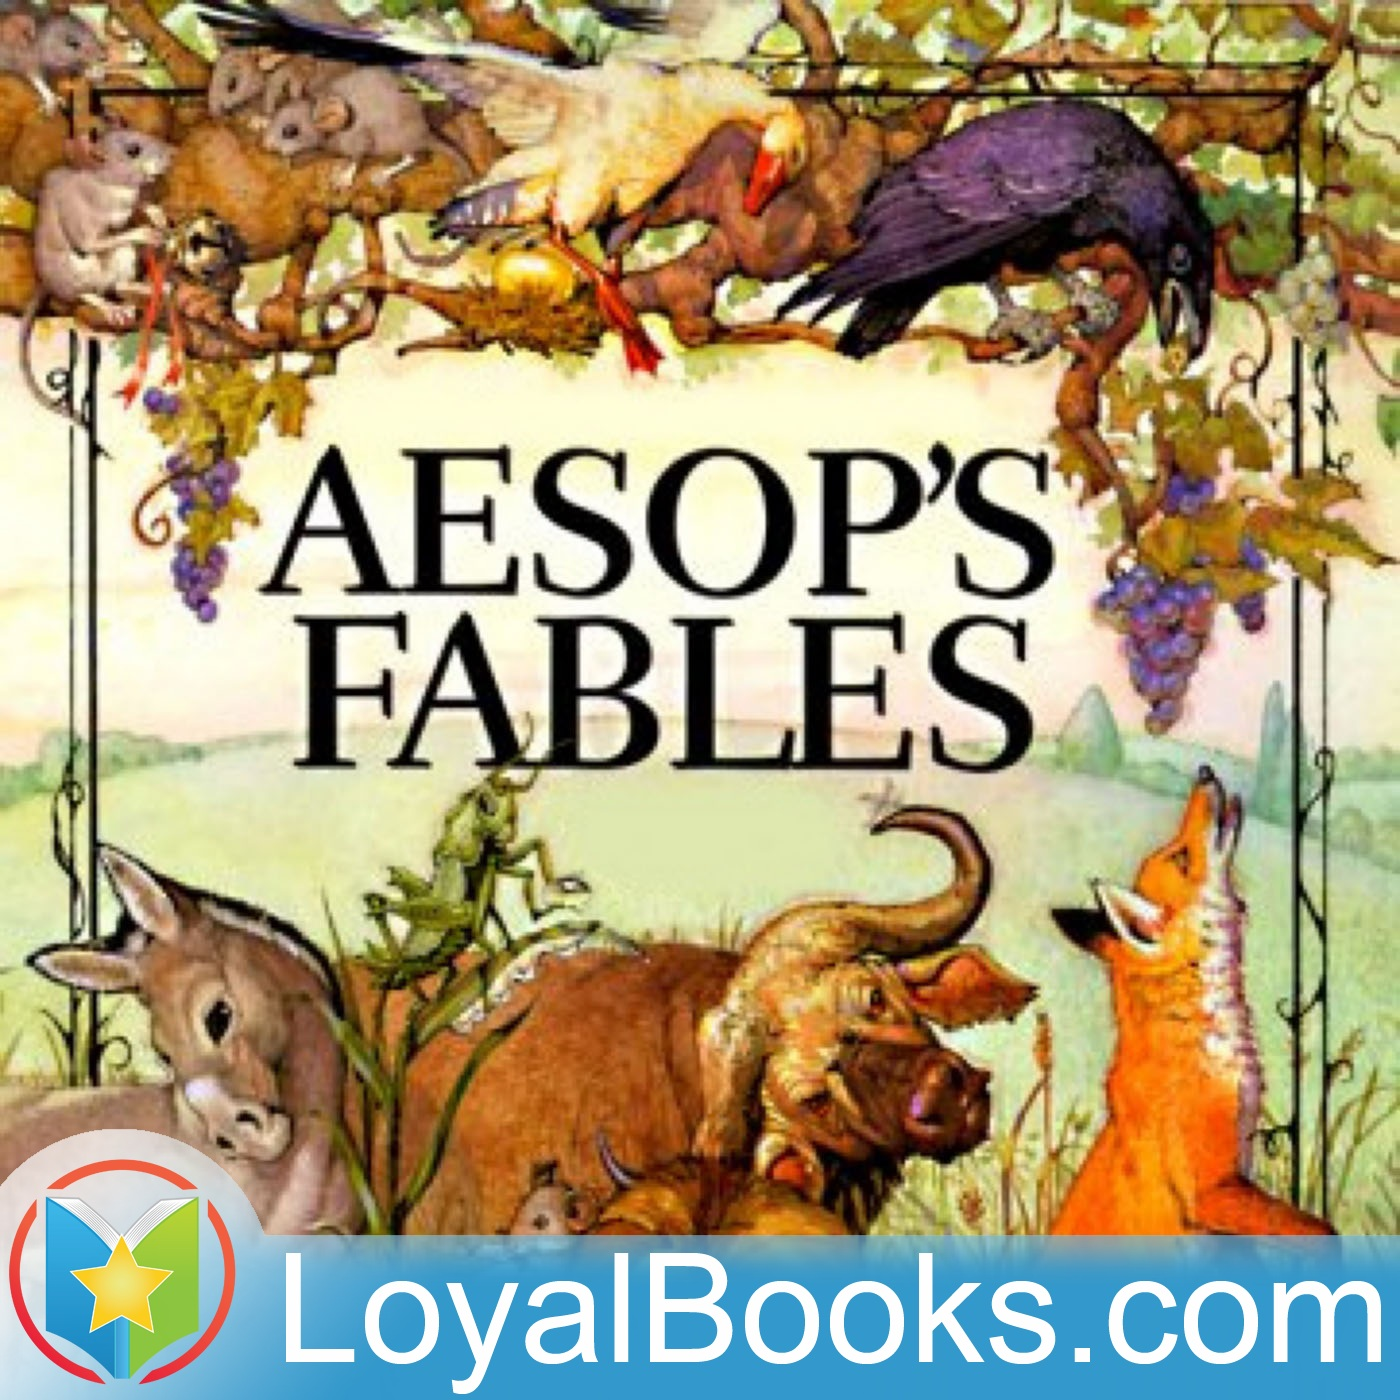 <![CDATA[Aesops Fables in Russian by Aesop]]>